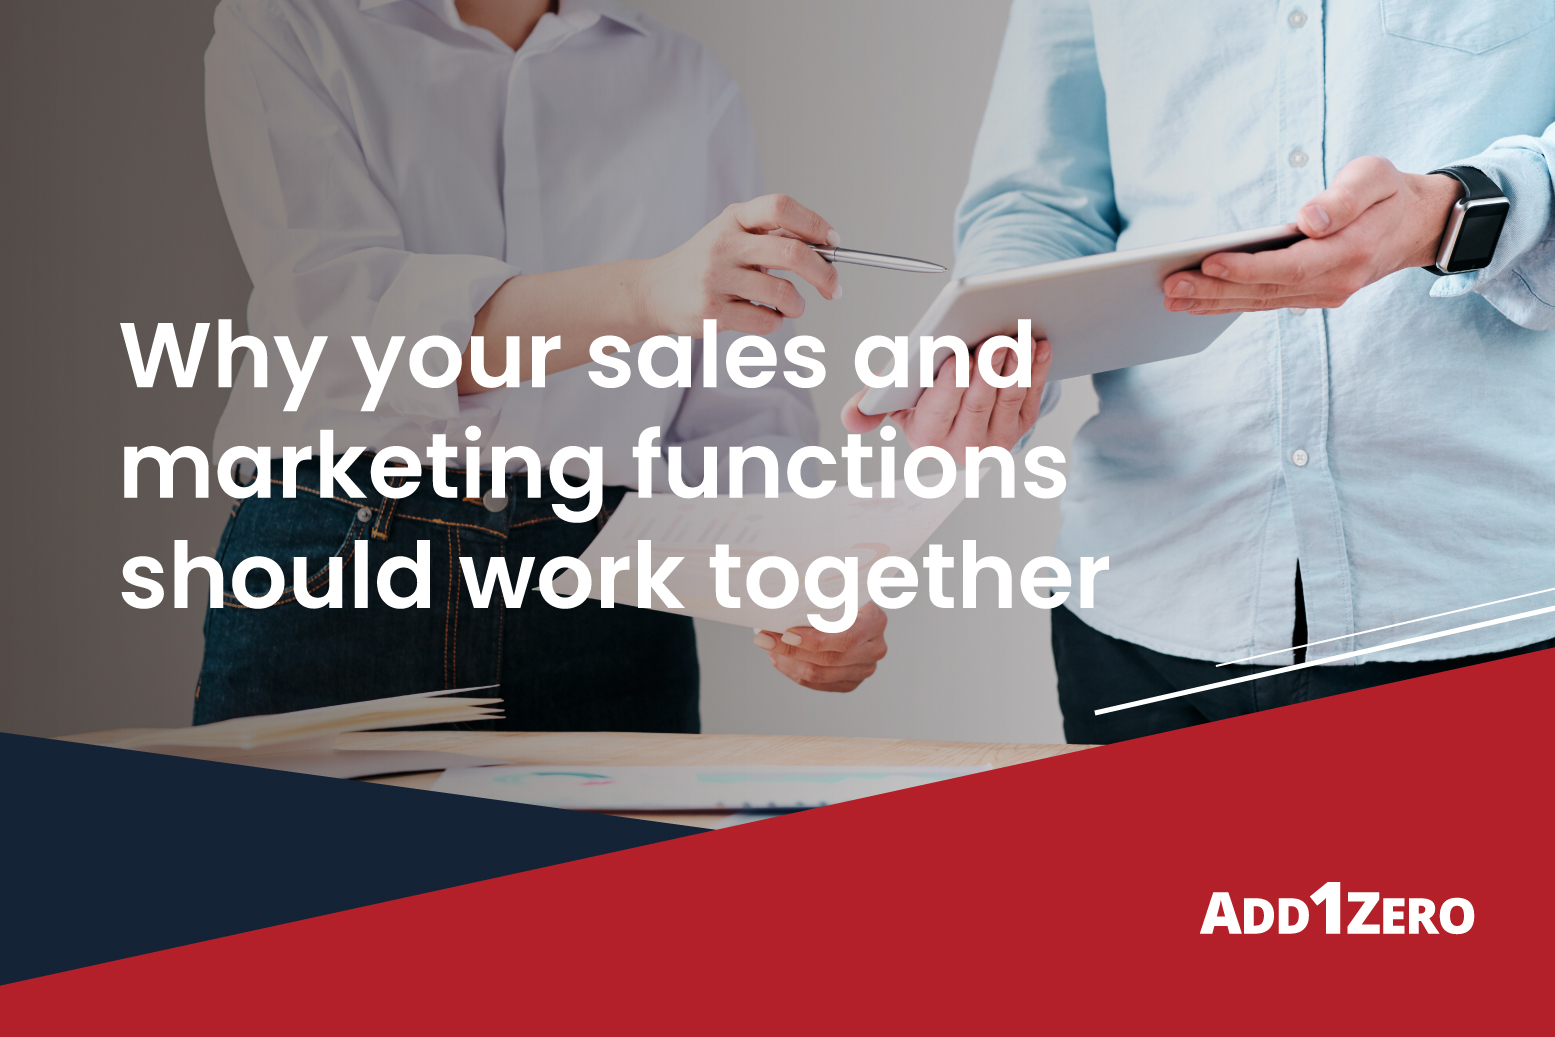 Don't keep your sales and marketing functions separate